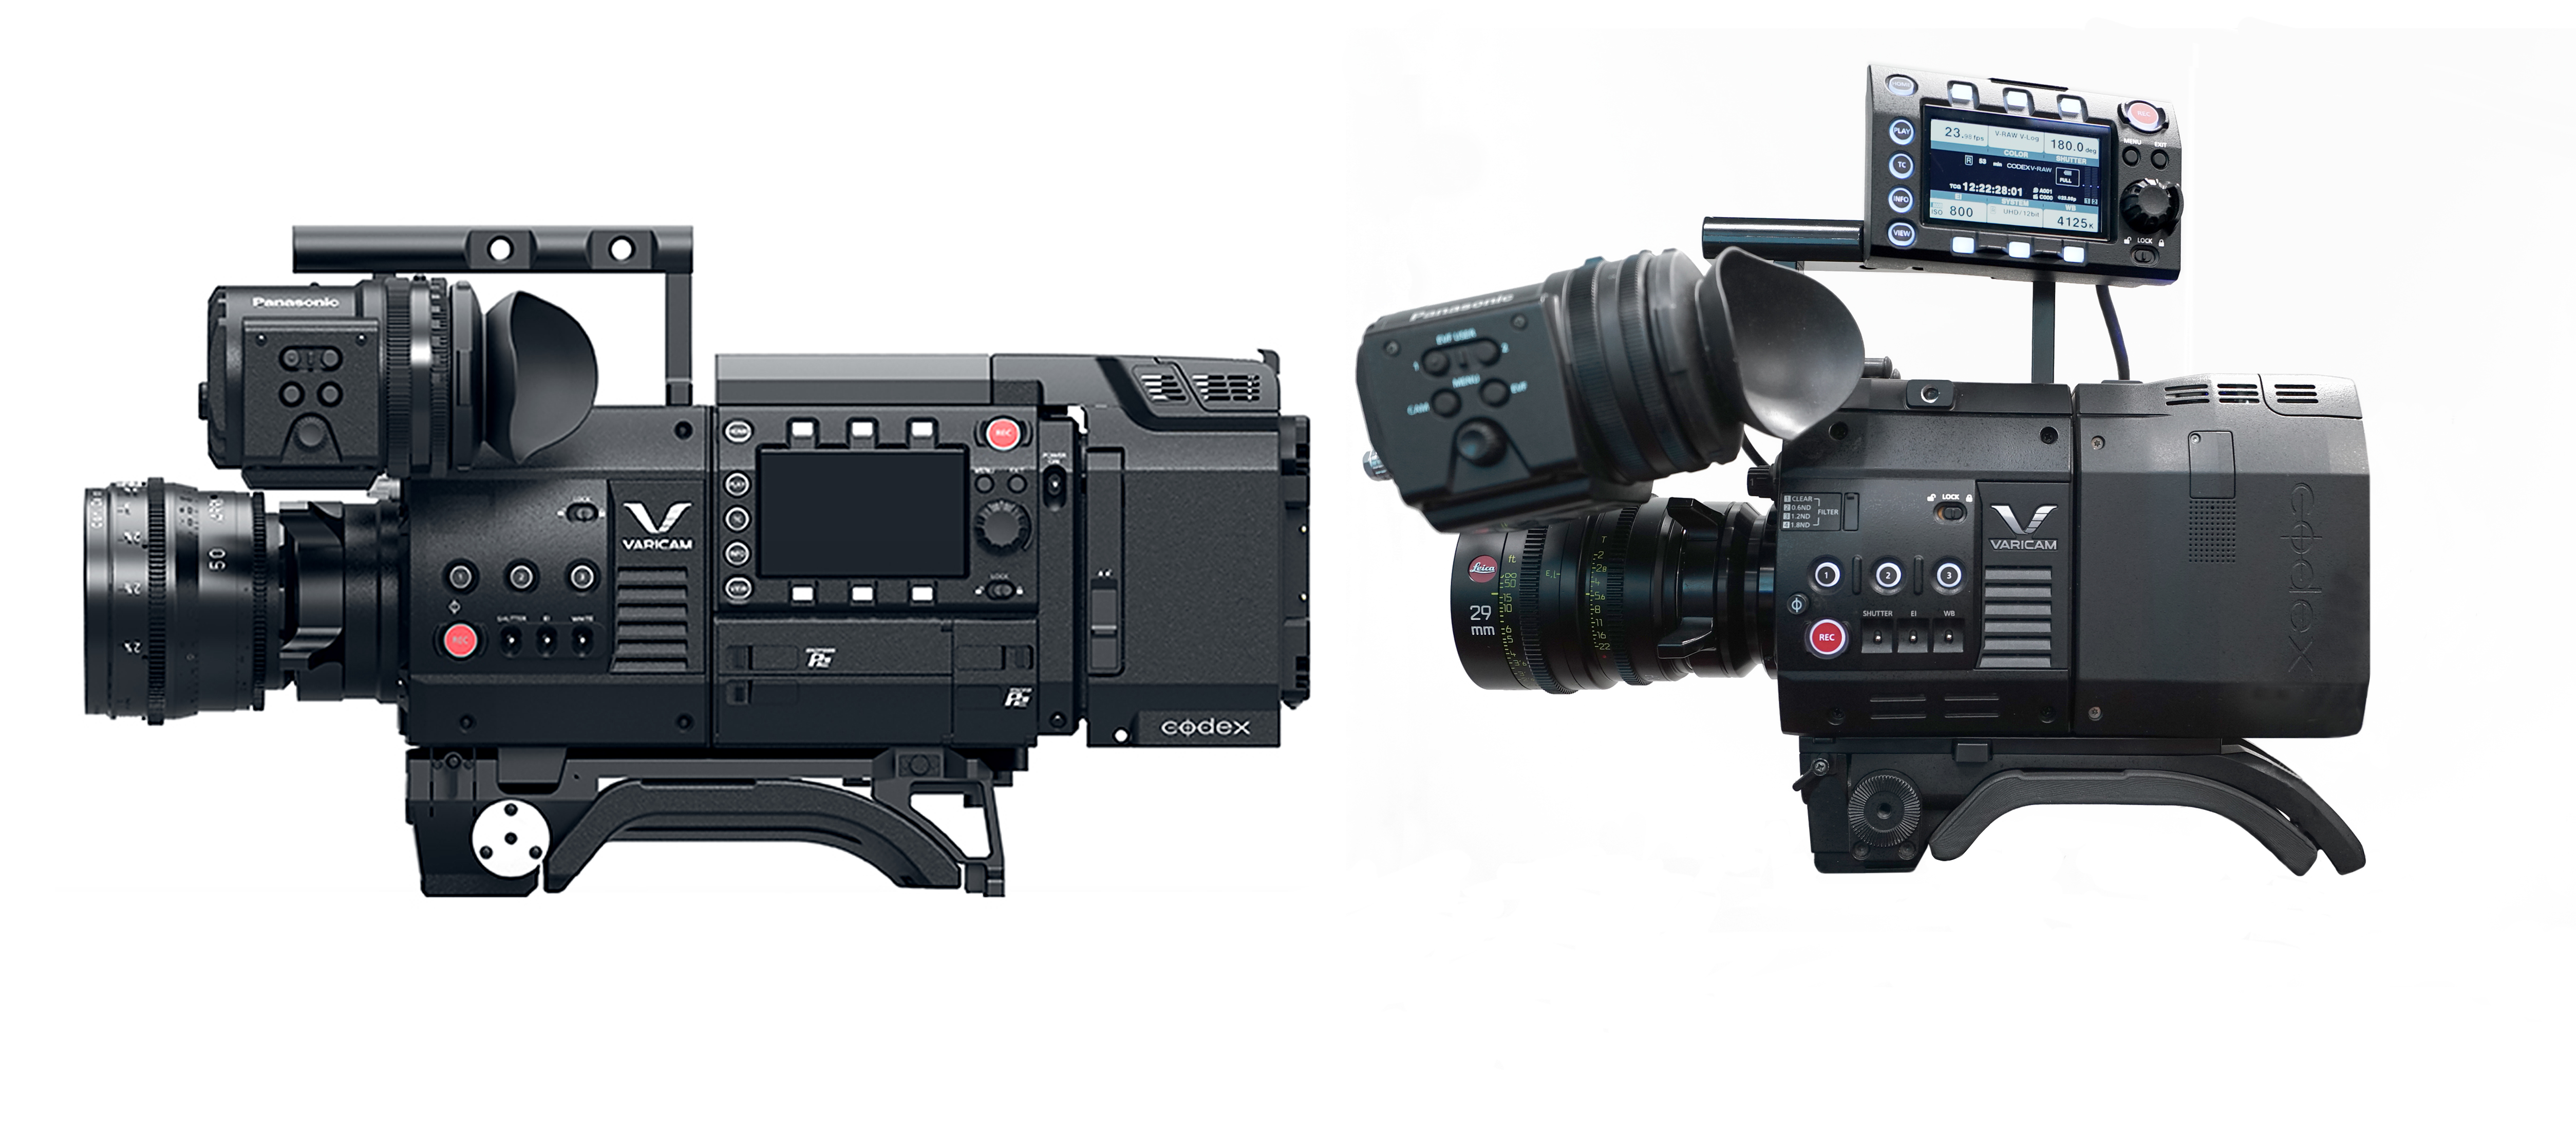 Digital Motion Picture Cameras in 2017: New Images for the 21st